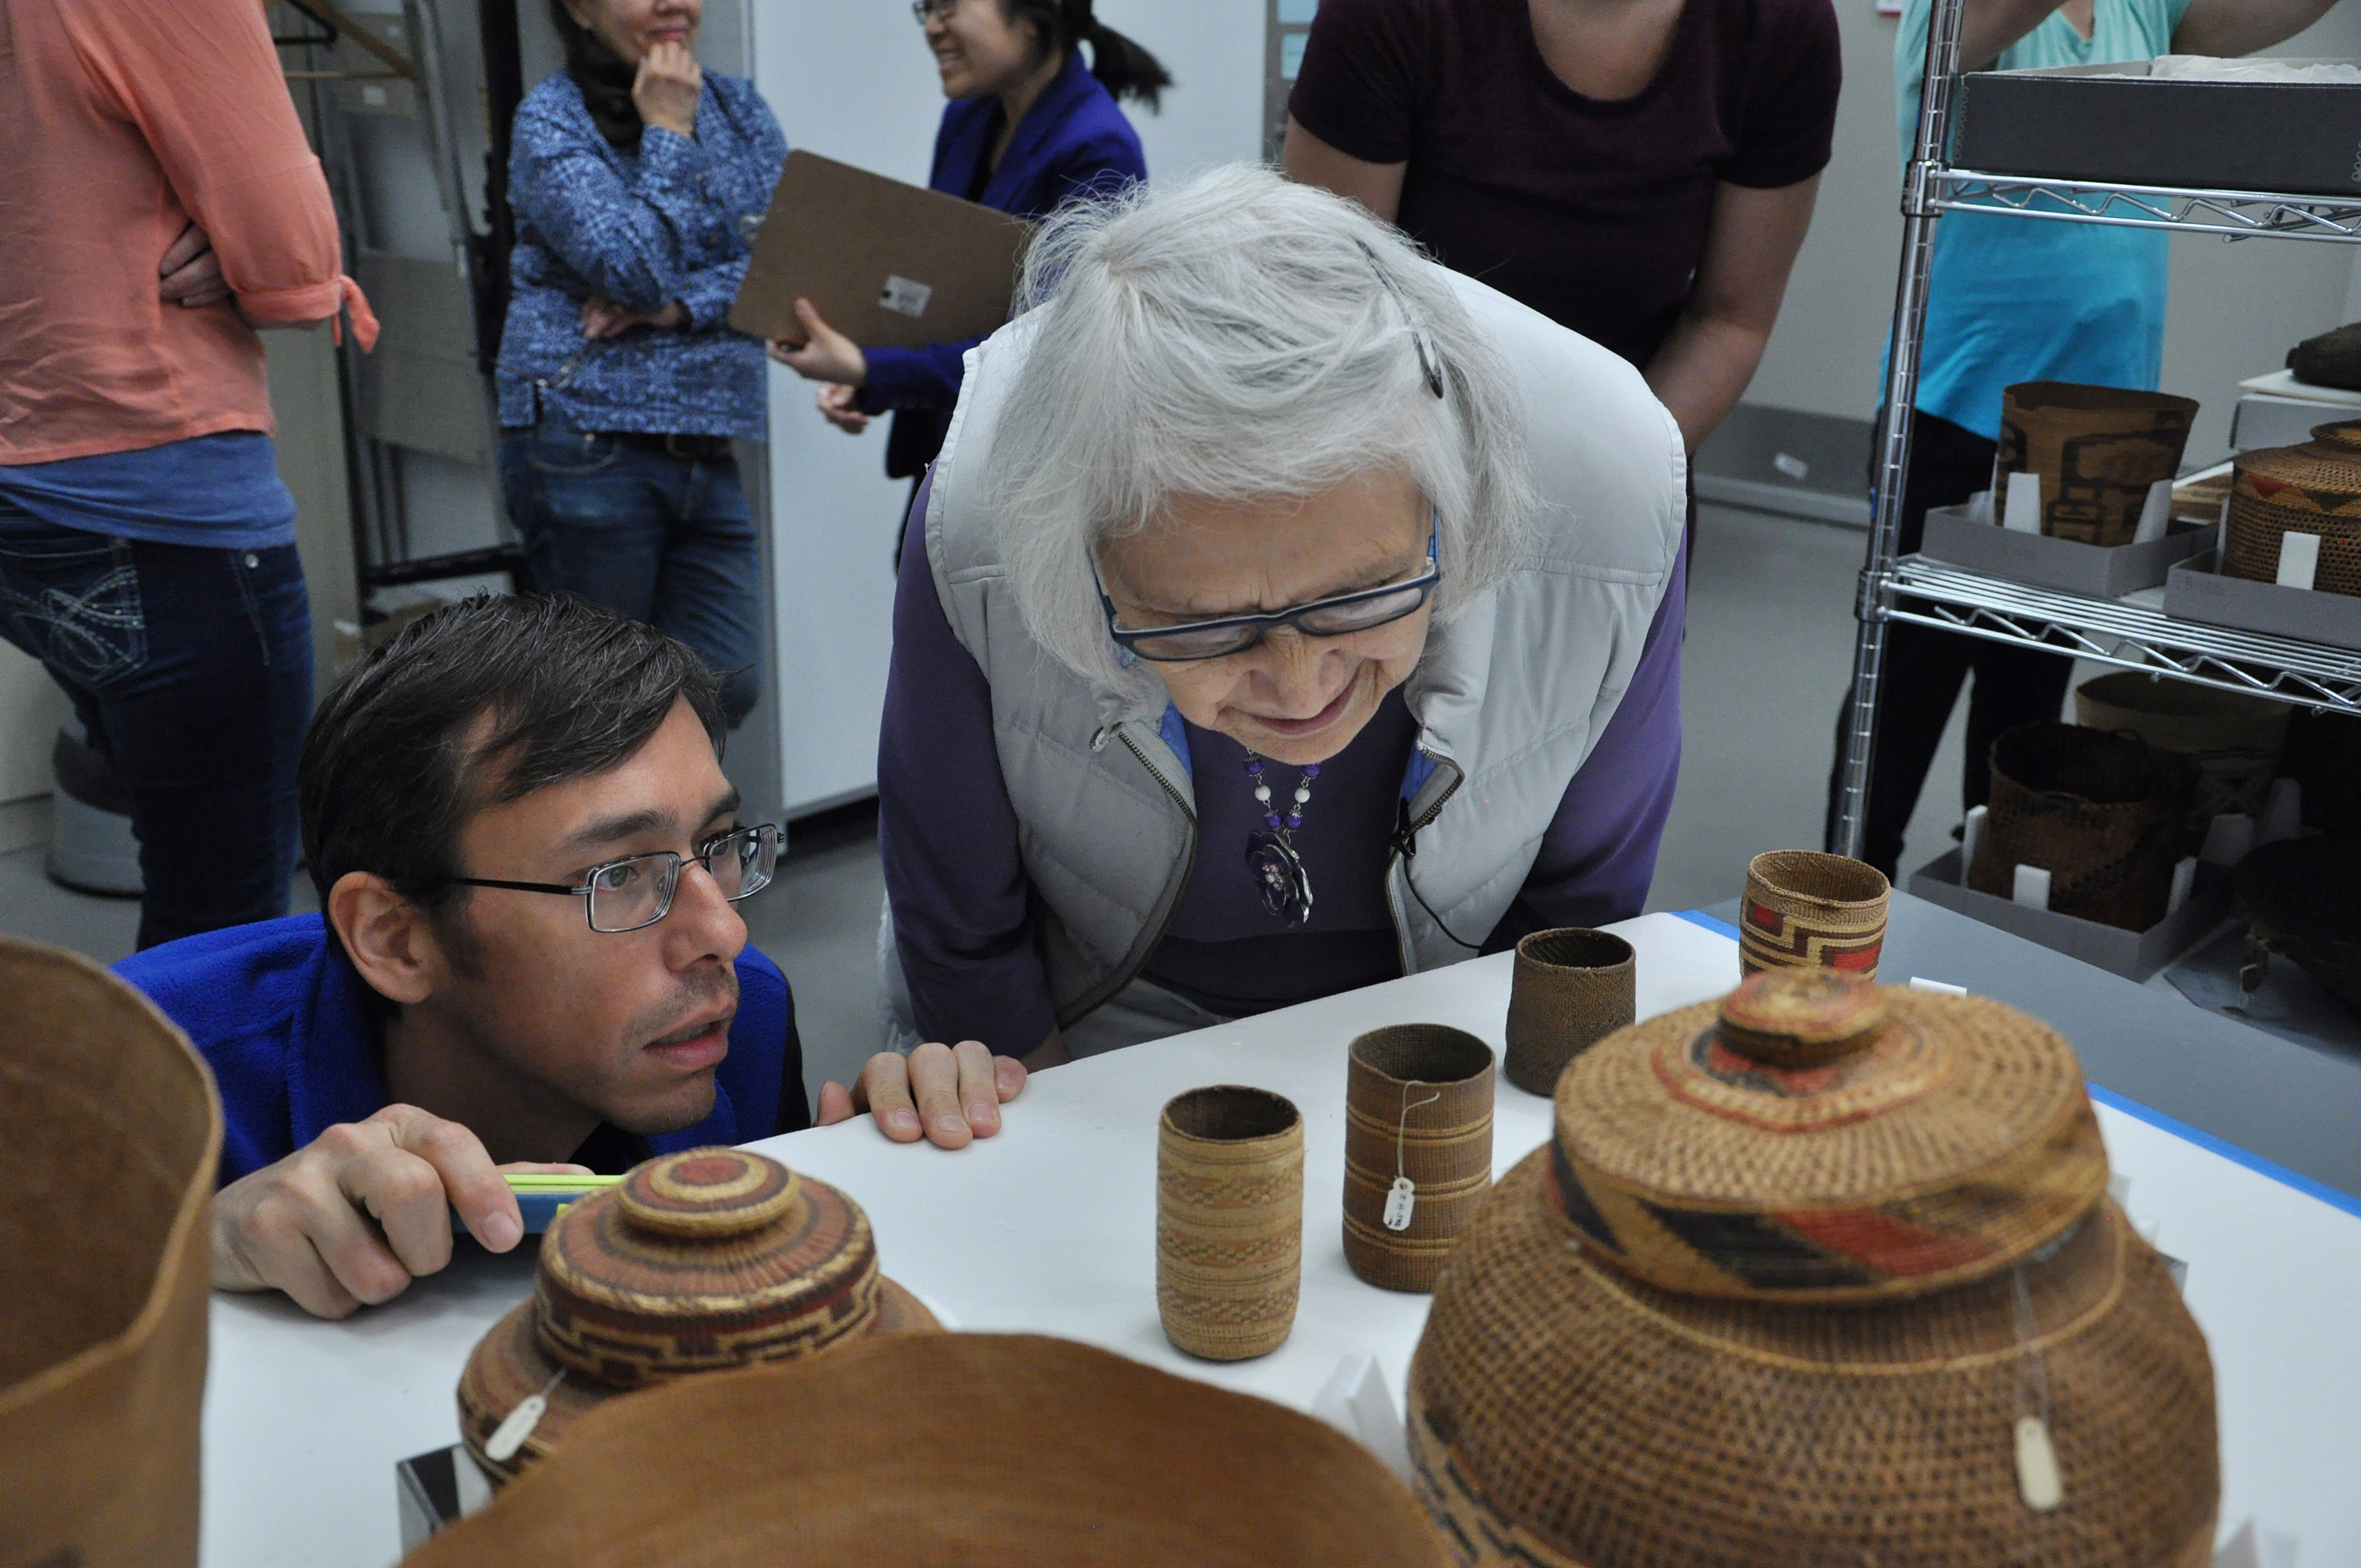 Hans Chester, left, of Sealaska Heritage Institute, and master Haida weaver Delores Churchill examine spruce root basketry in the collections vault of the Father Andrew P. Kashevaroff State Library, Archives and Museum in August 2017. (Photo by Davina Cole, courtesy Sealaska Heritage Institute)